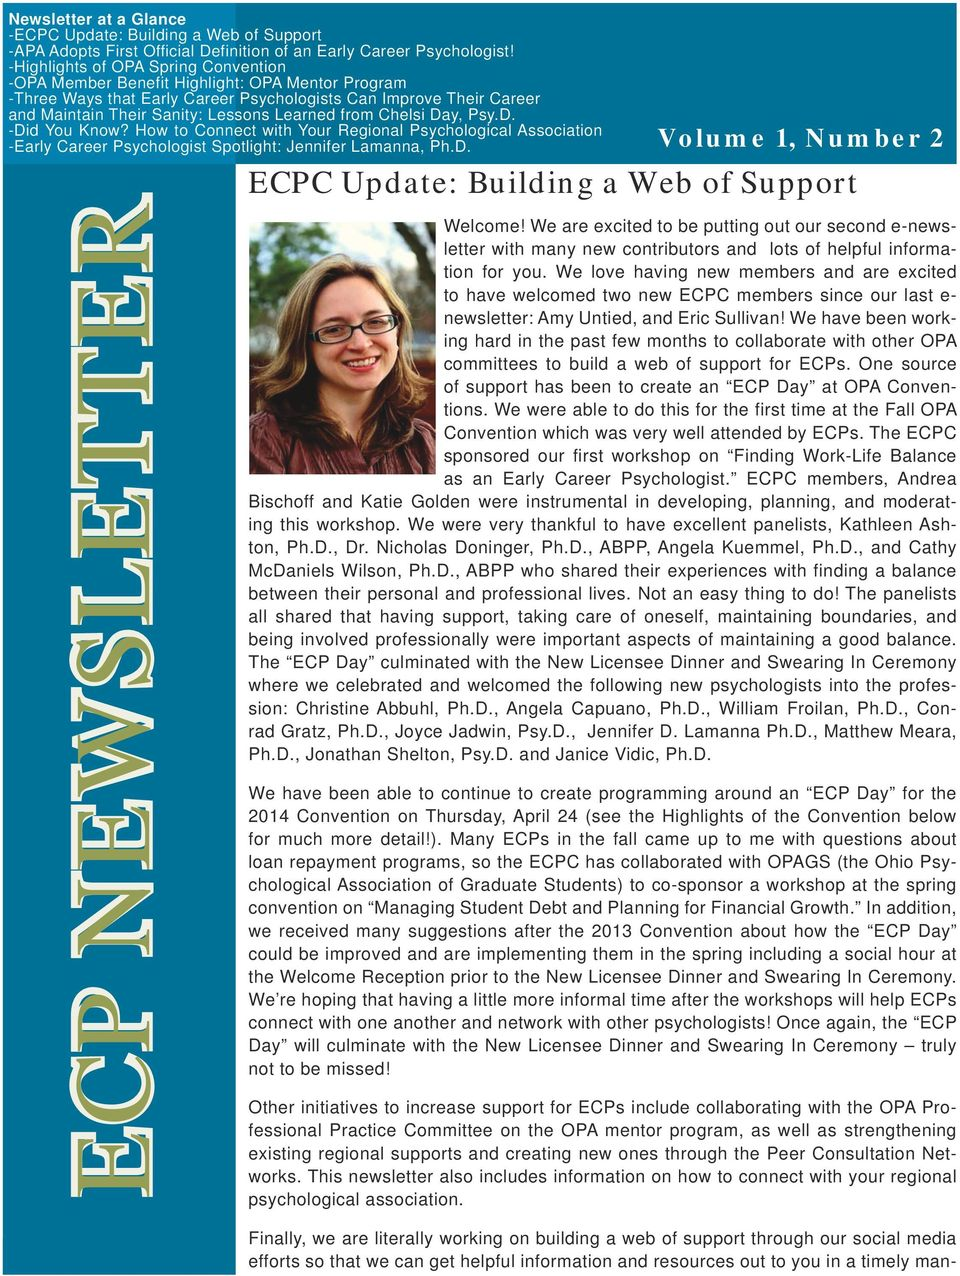 from Chelsi Day, Psy.D. -Did You Know? How to Connect with Your Regional Psychological Association -Early Career Psychologist Spotlight: Jennifer Lamanna, Ph.D. ECPC Update: Building a Web of Support ECP NEWSLETTER Volume 1, Number 2 Welcome!